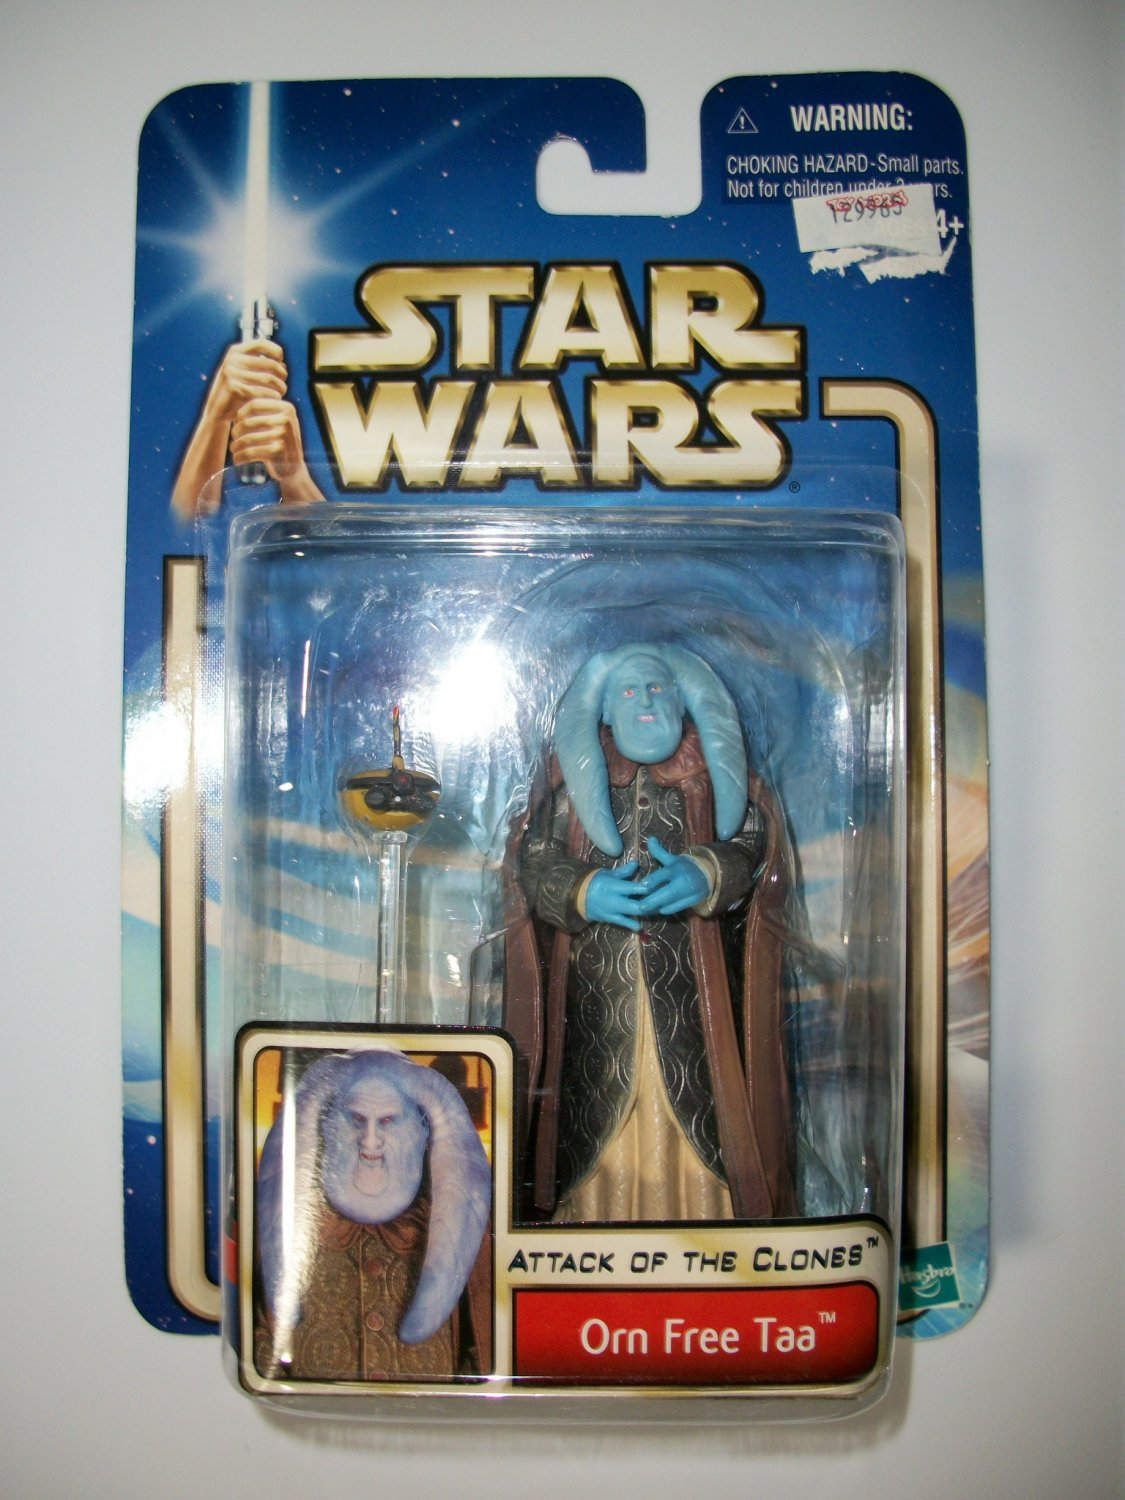 STAR WARS AOTC ORN FREE TAA Action Figure